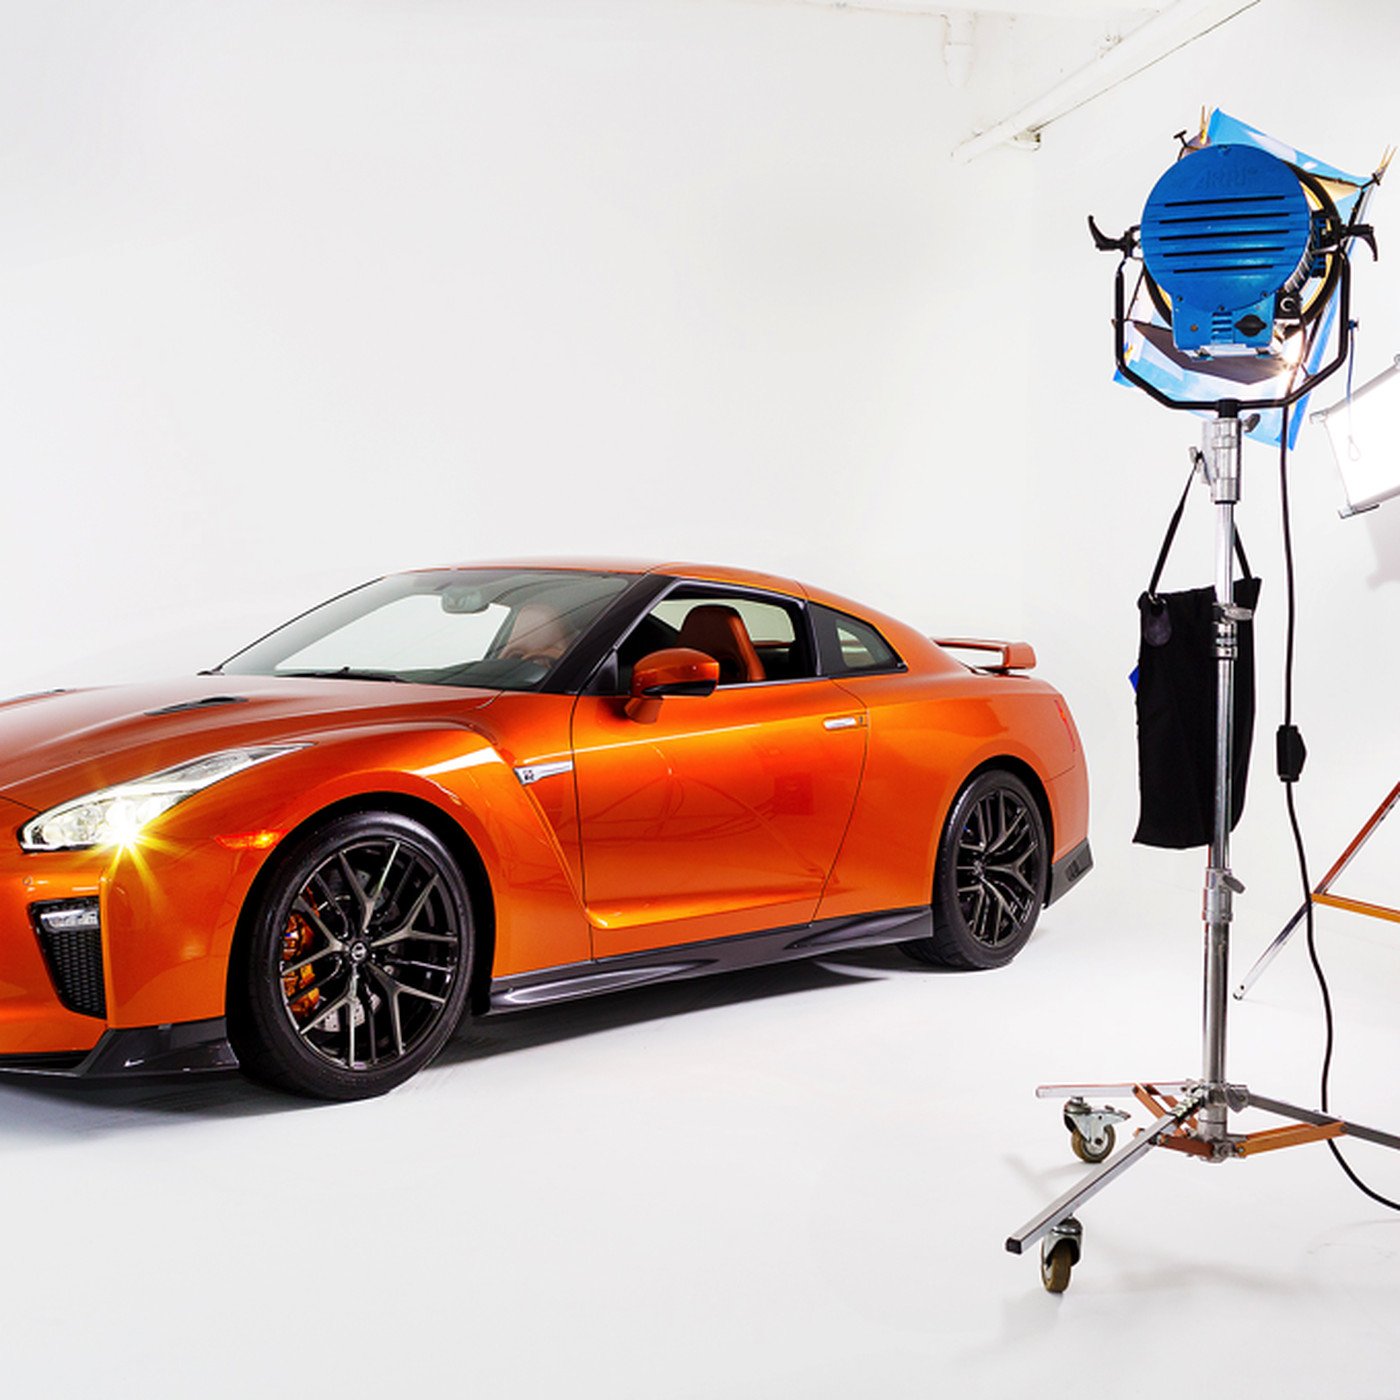 The 2017 Nissan Gt R Is A More Civilized Ful Zilla Verge